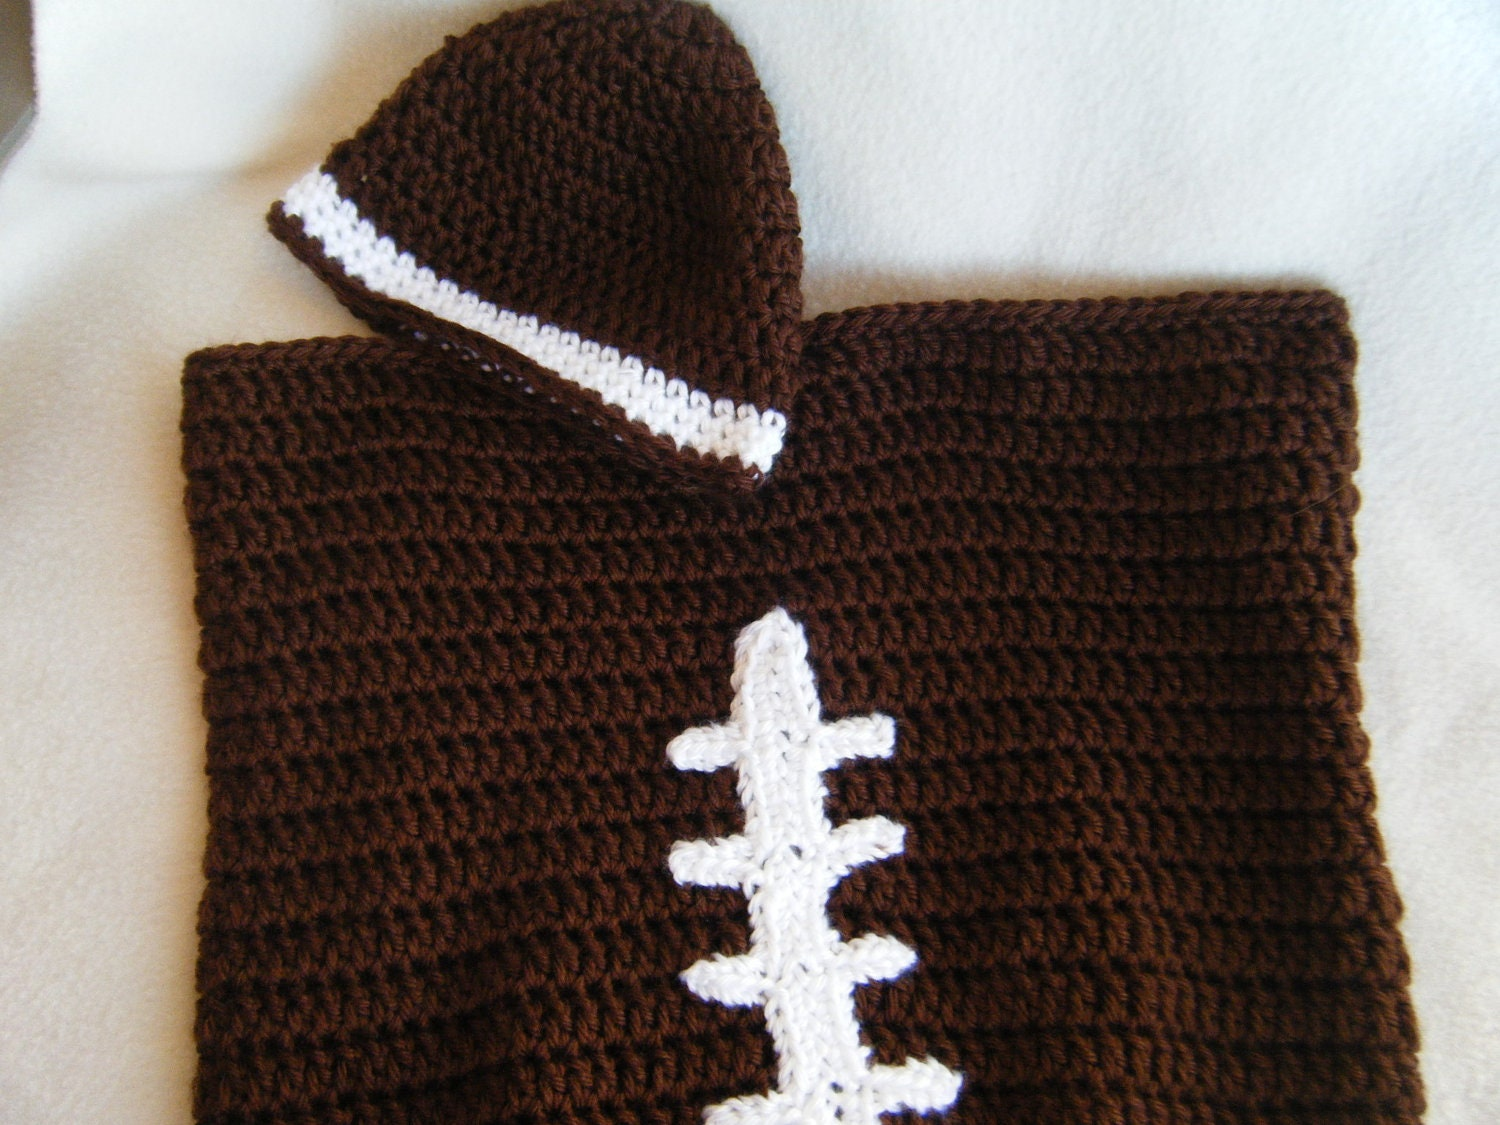 Crochet Pattern For Football Blanket : Crocheted Baby Football Cocoon/Blanket by KraftyGrannysHome